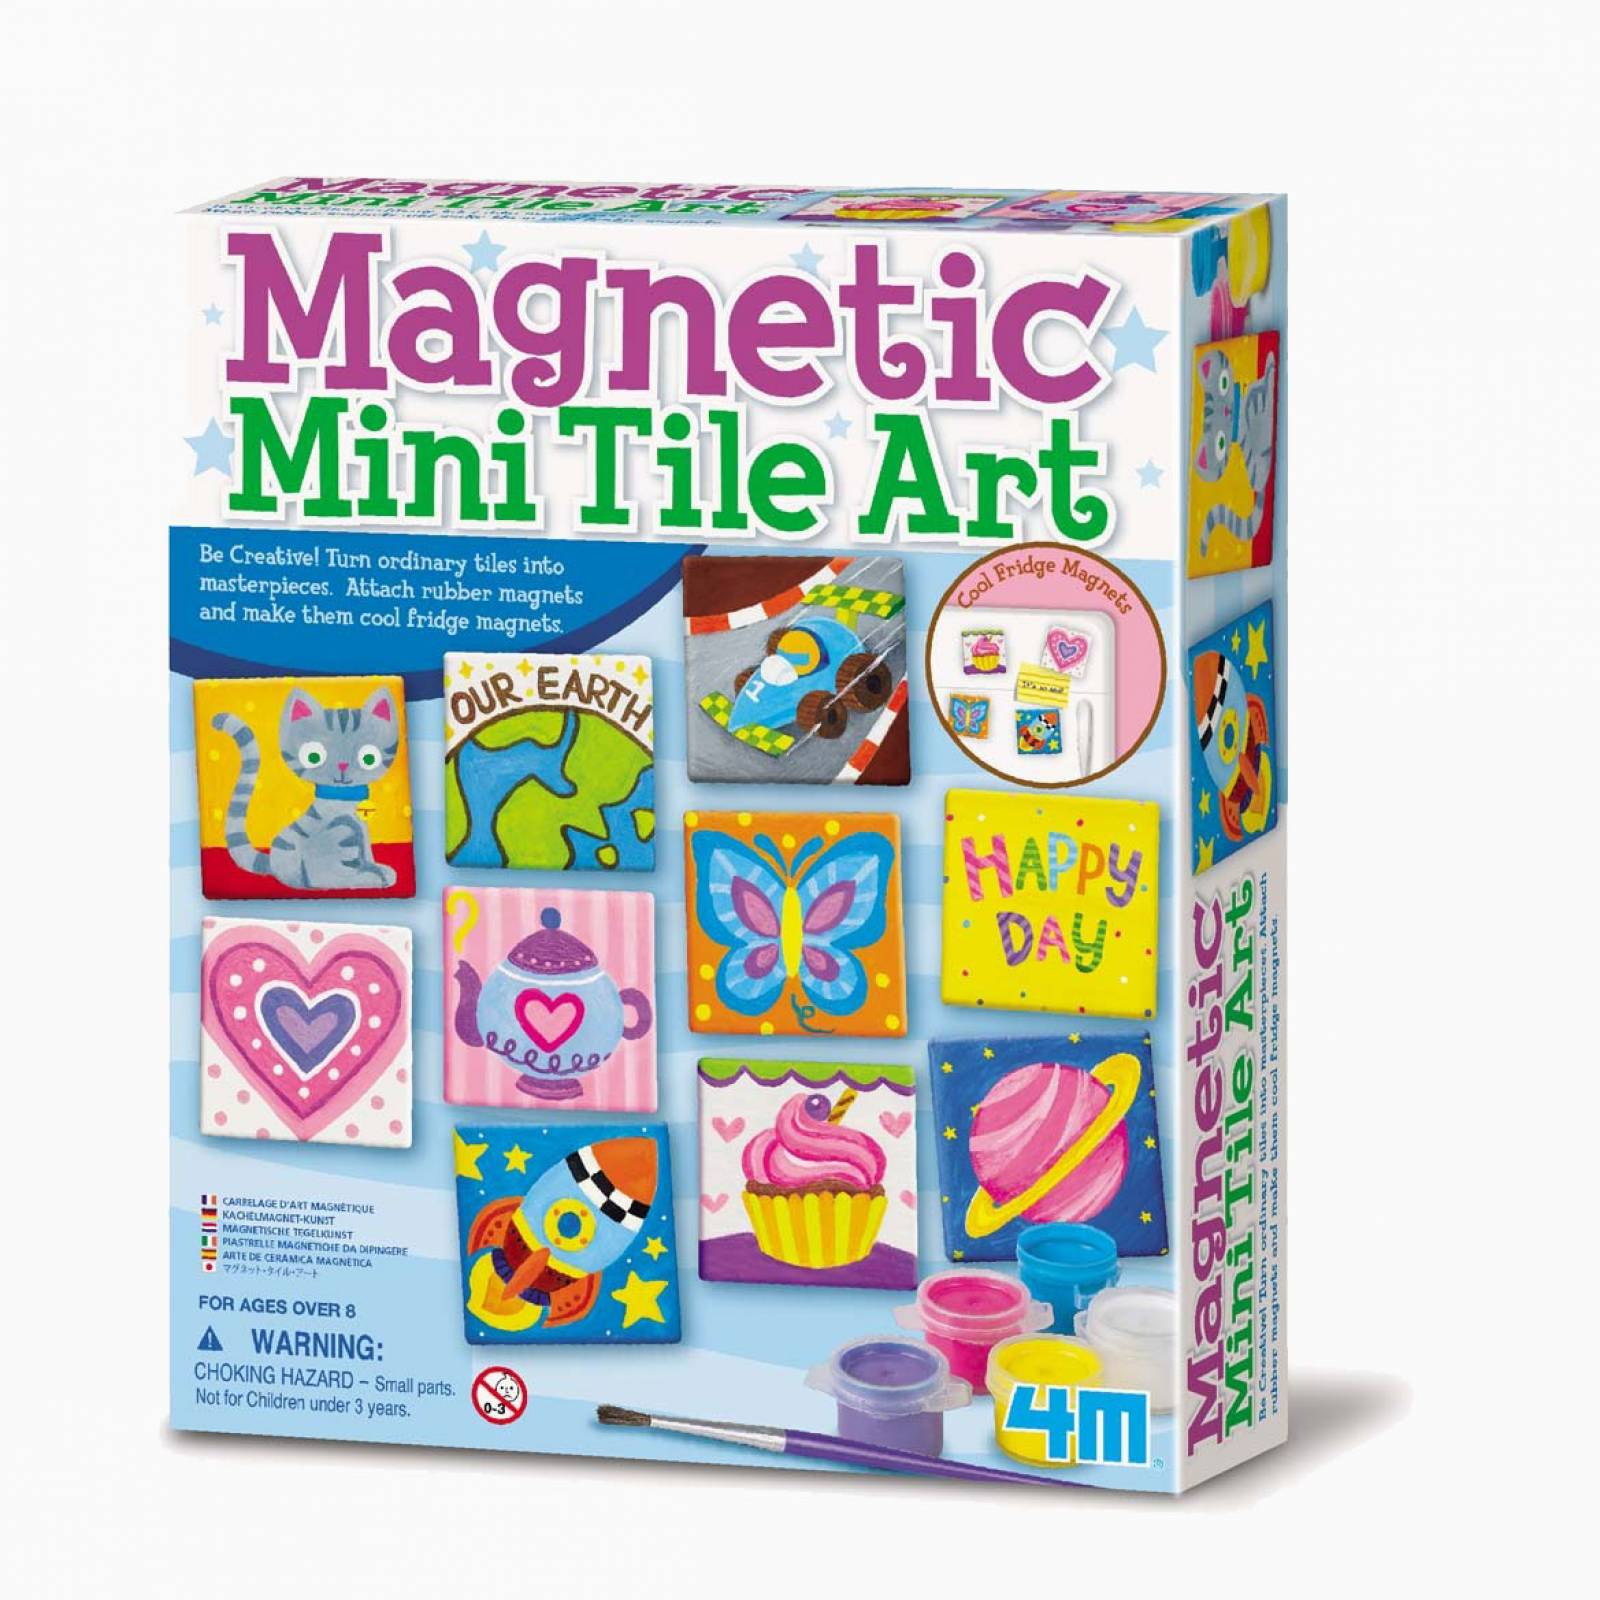 Magnetic Mini Tile Art - Art Kit 8+